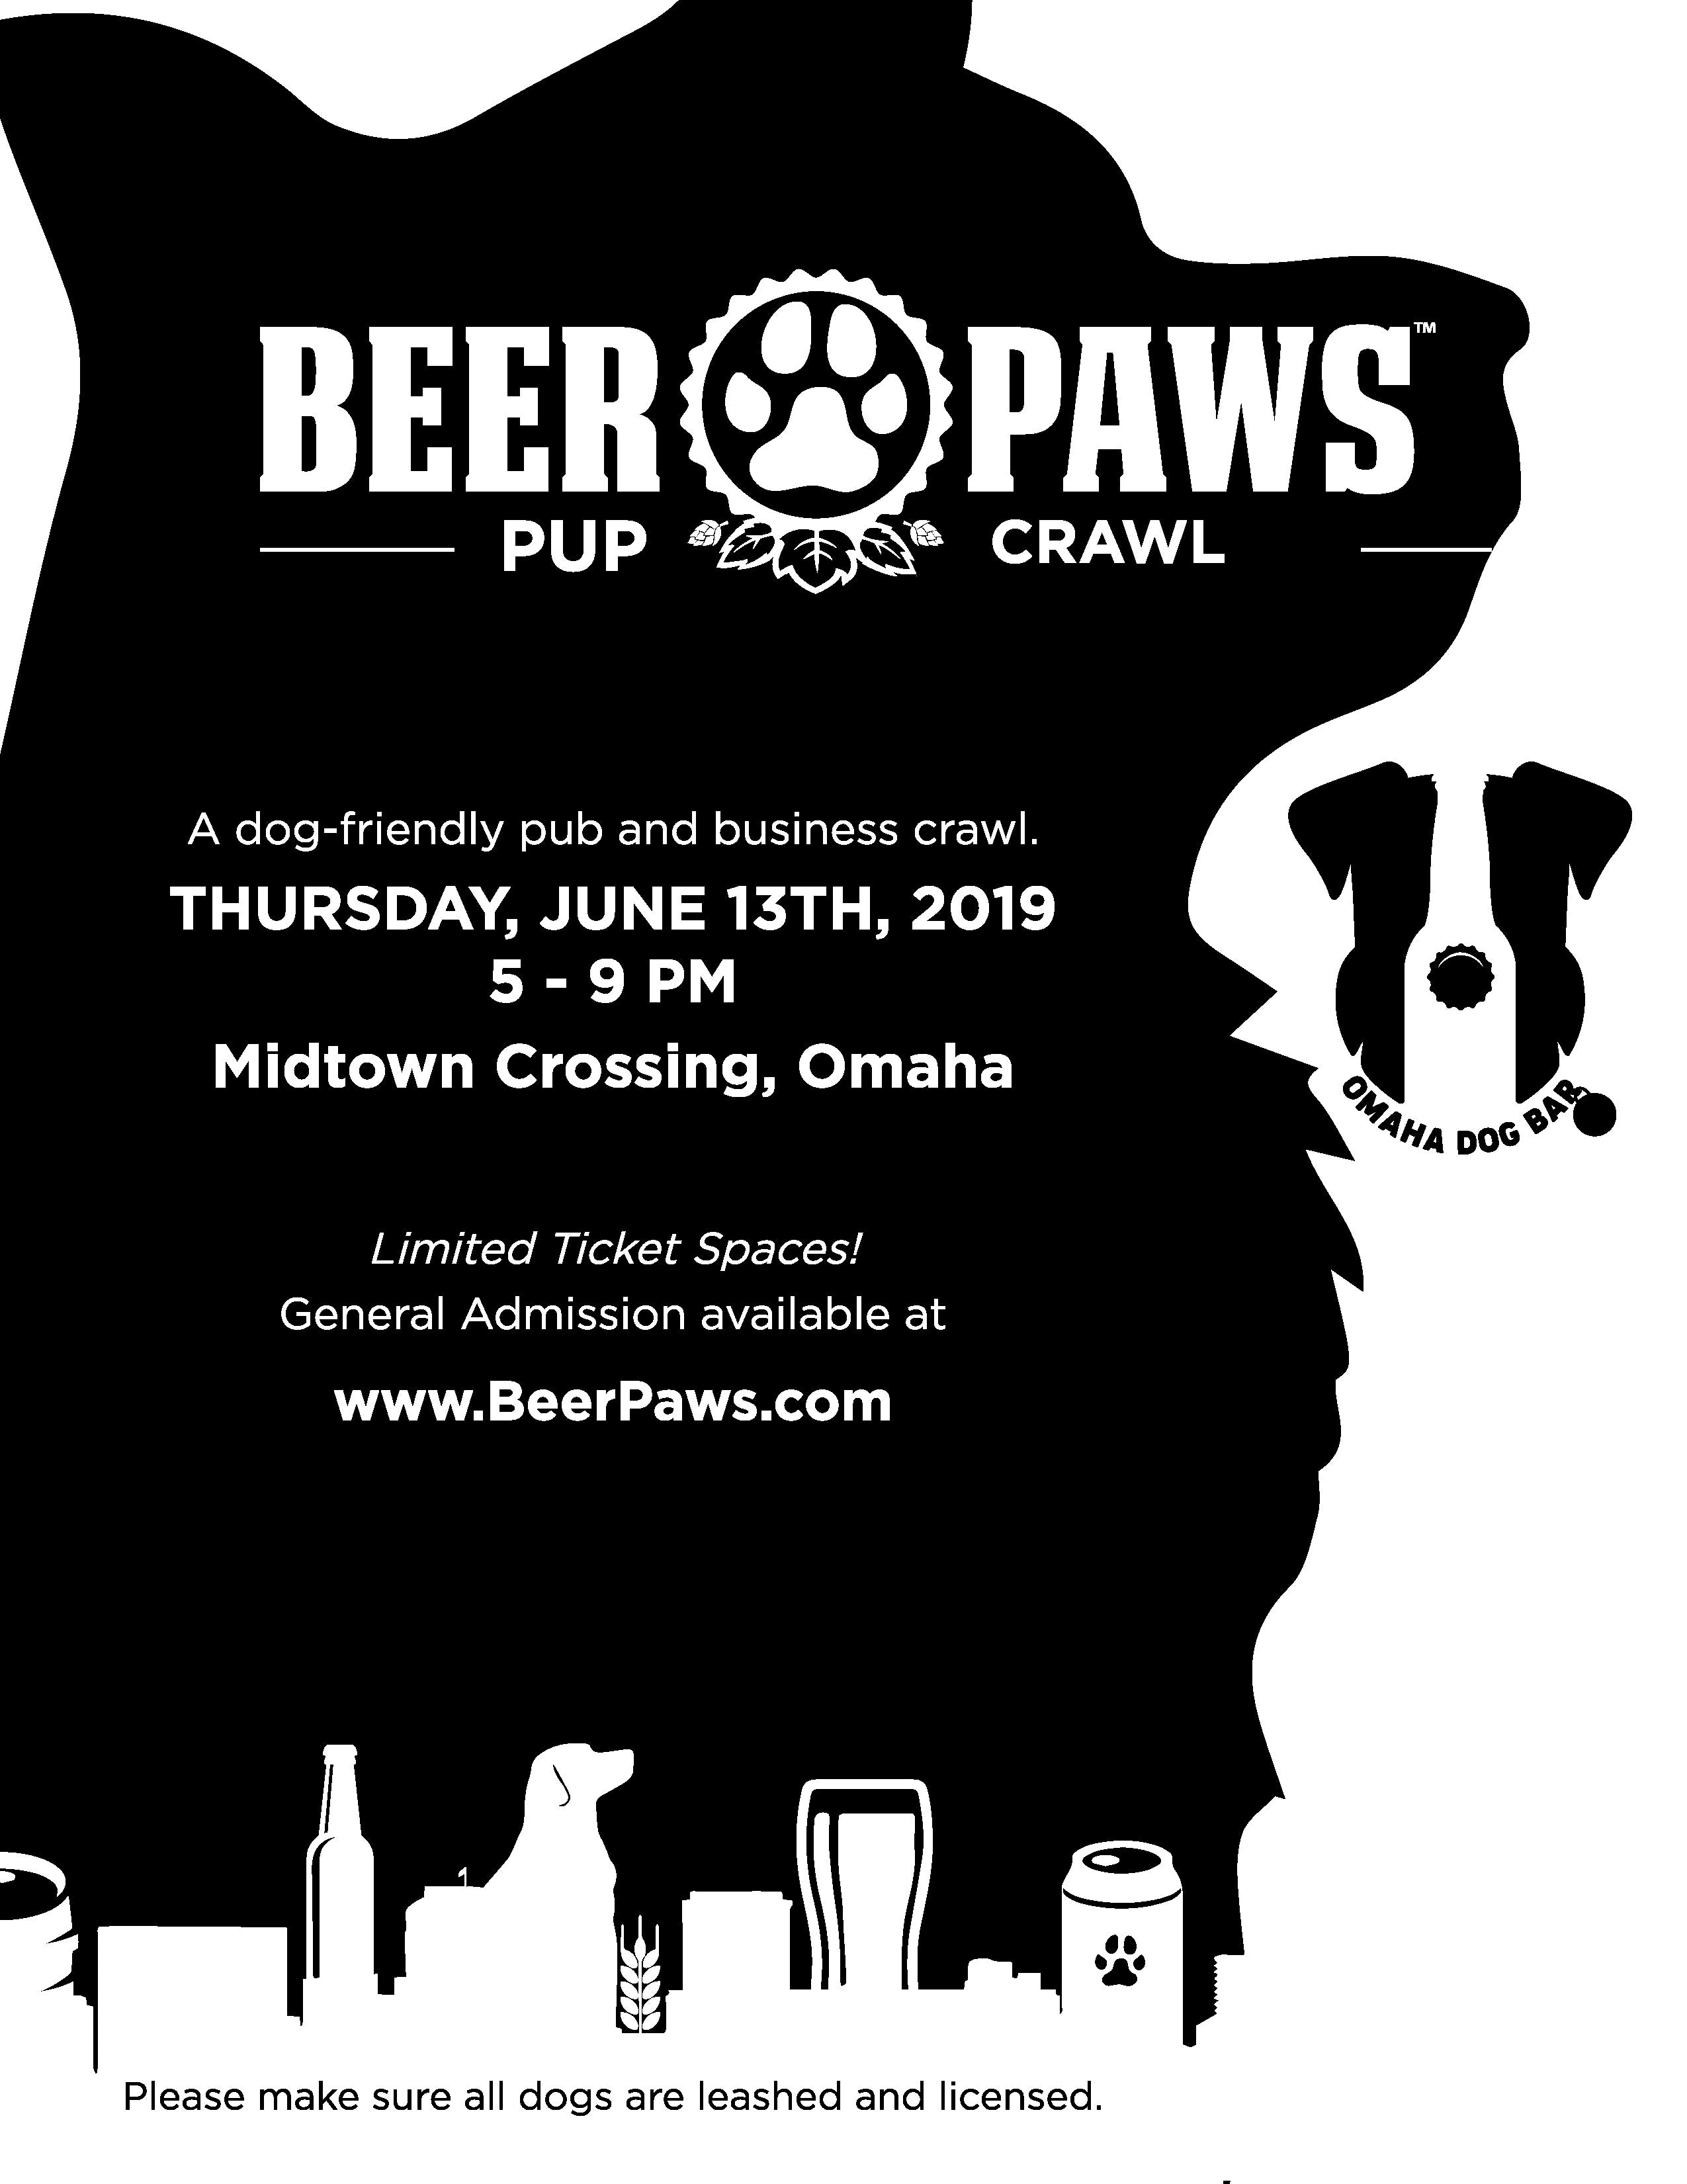 Midtown Crossing Events Omaha Events Things To Do In >> Omaha Beer Paws Pup Crawl At Midtown Crossing Thursday June 13 201